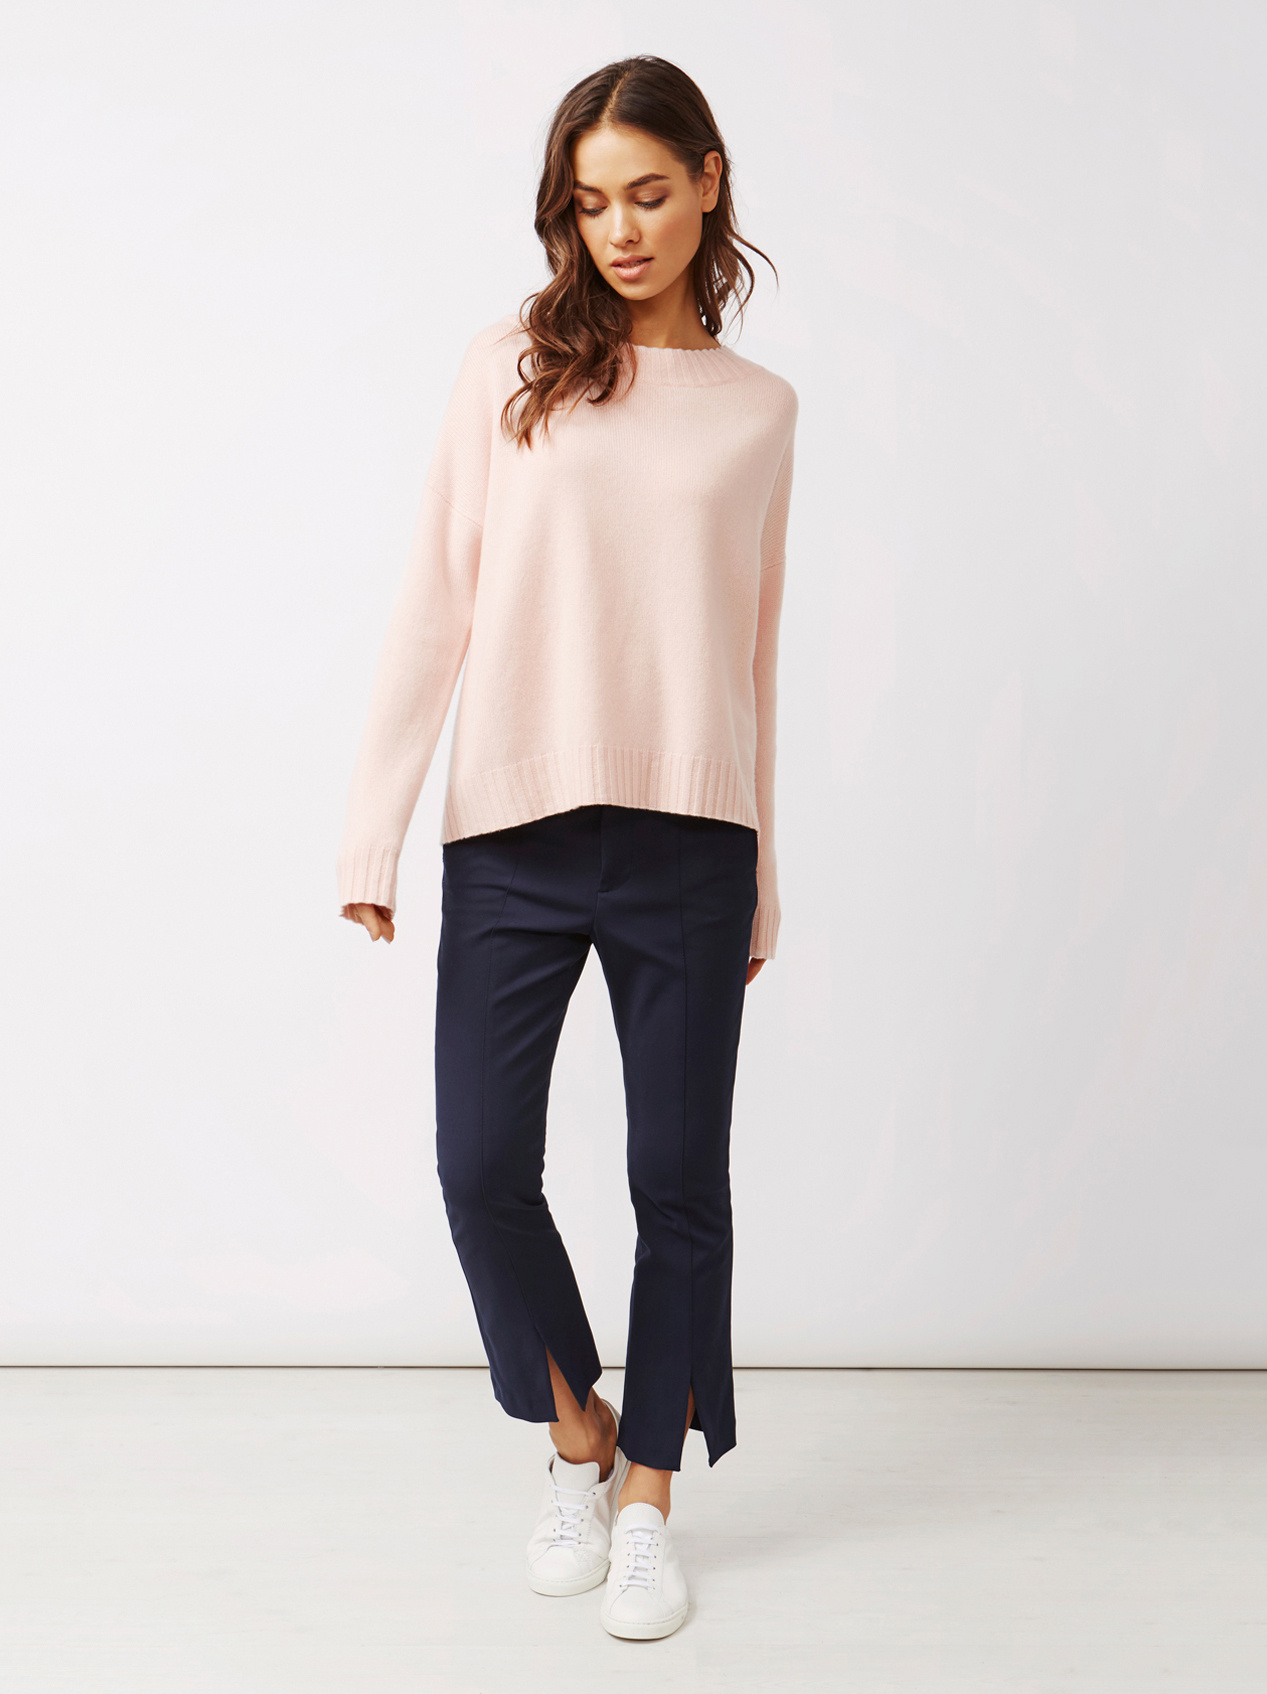 Soft Goat Women's Relaxed Sweater Powder